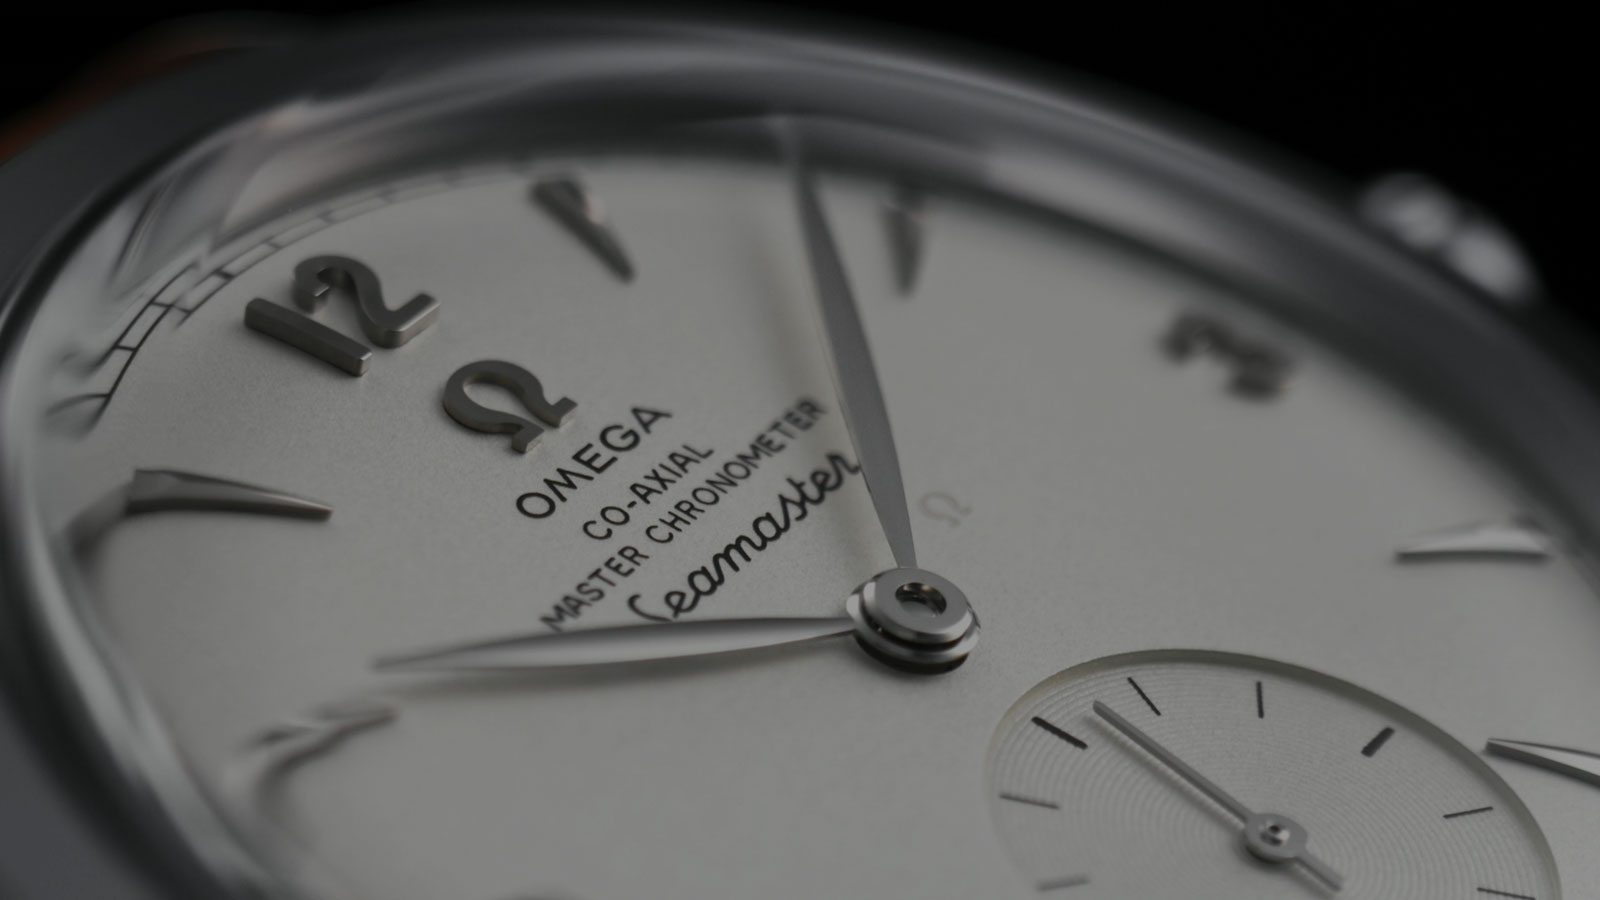 Seamaster 1948 Watches - Video - 58912